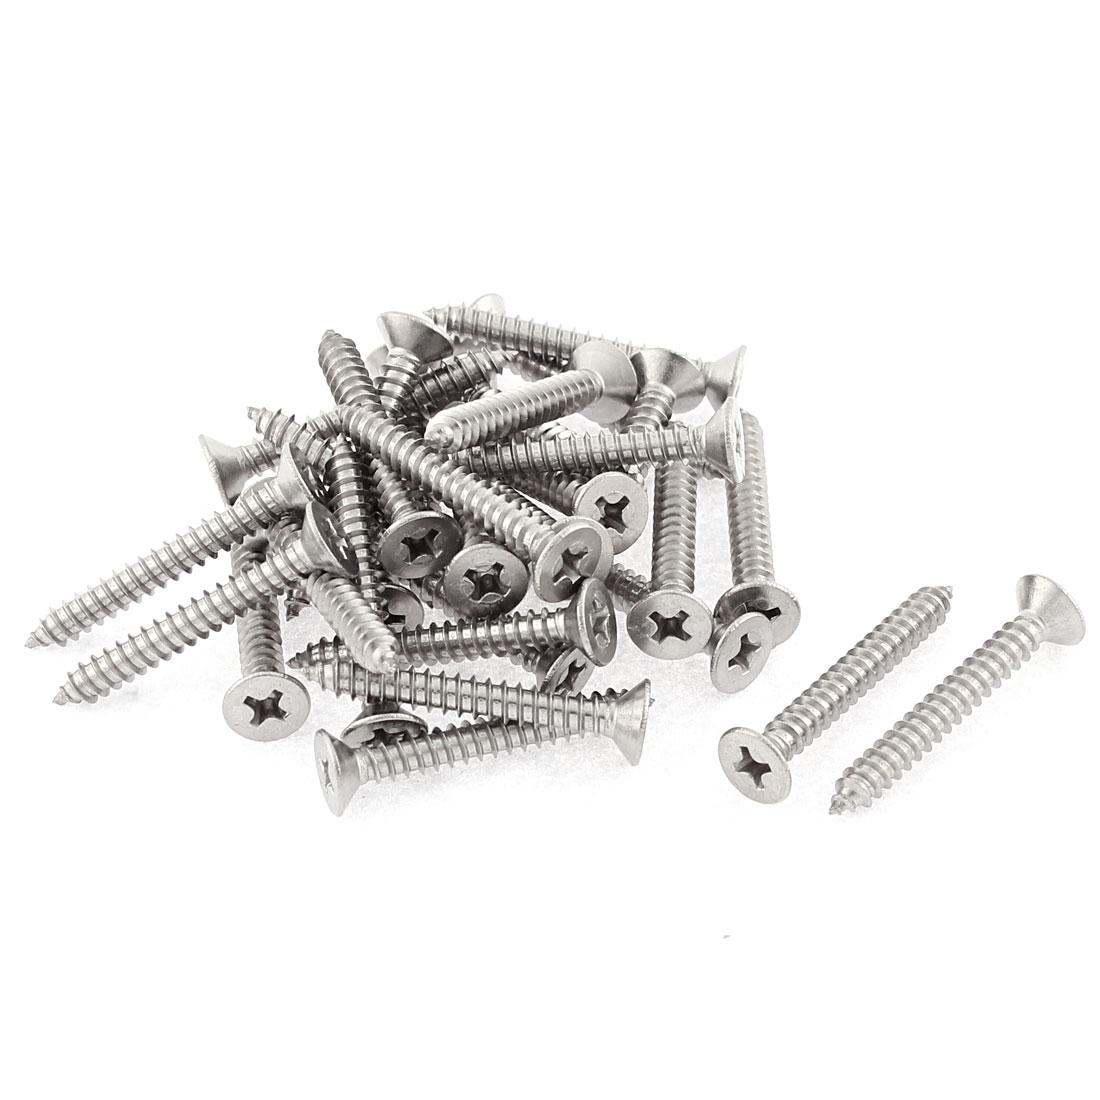 30 Pcs 4.2mmx32mm Stainless Steel Phillips Flat Head Sheet Self Tapping Screws